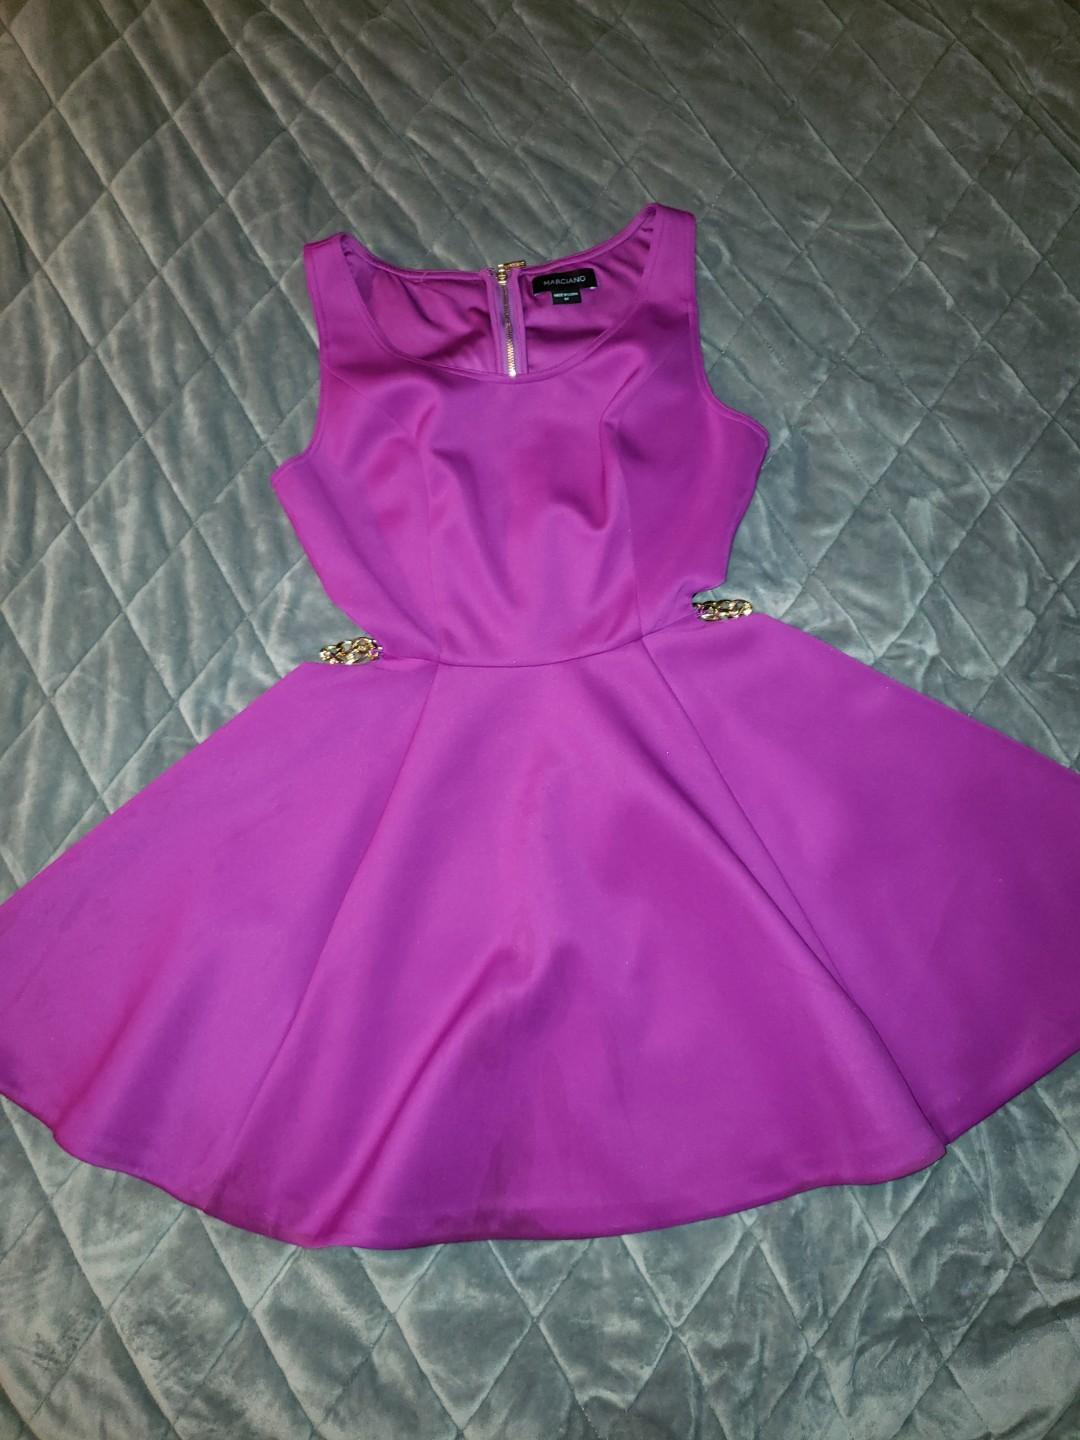 Purple Marciano Dress with side cut out and gold chain detail - size Medium